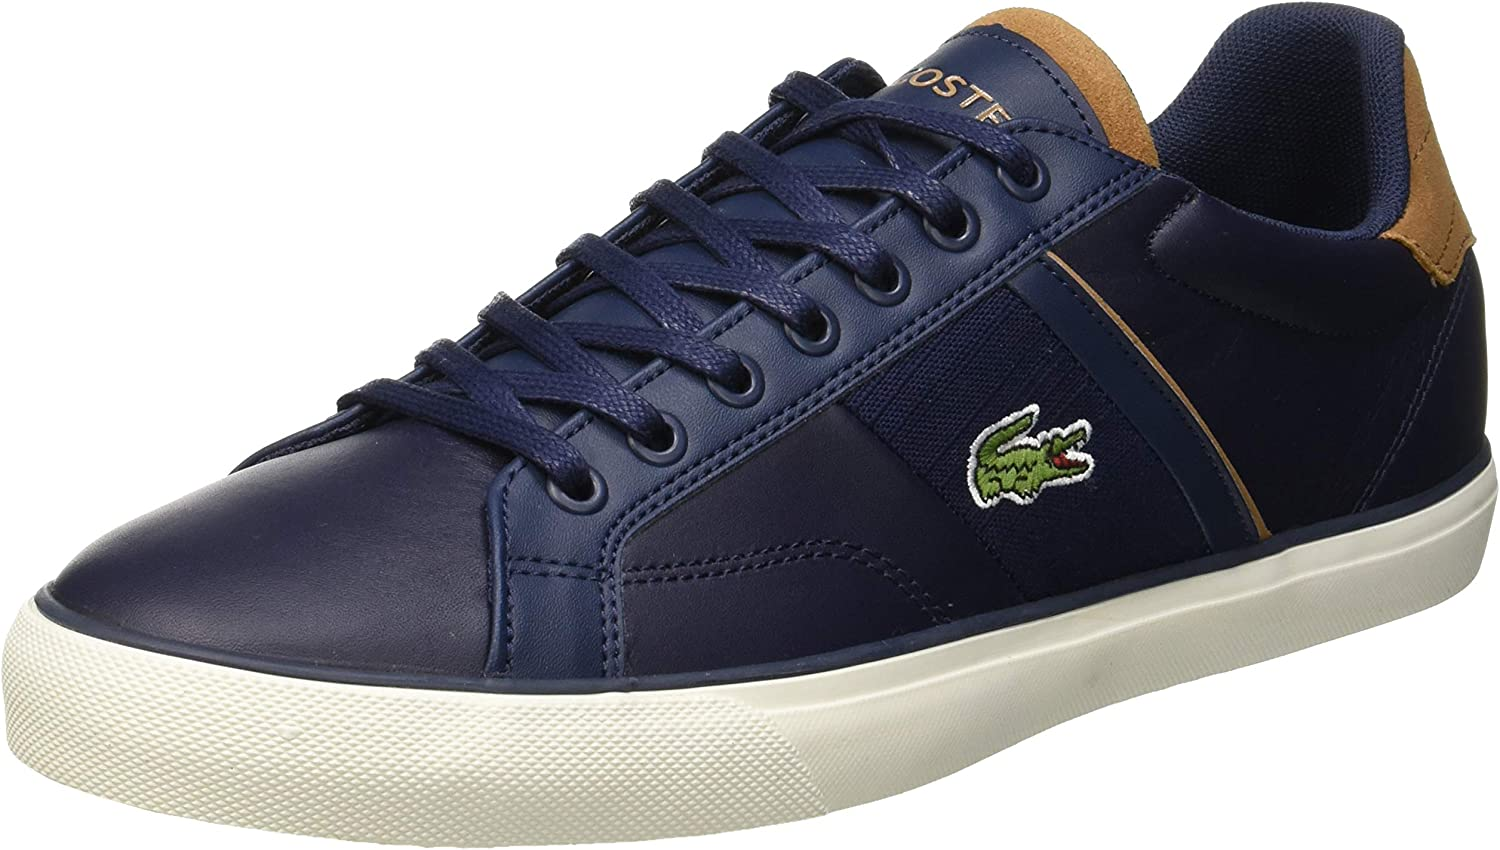 Lacoste Ampthill Chukka Trainers in Navy /& Light Brown Leather